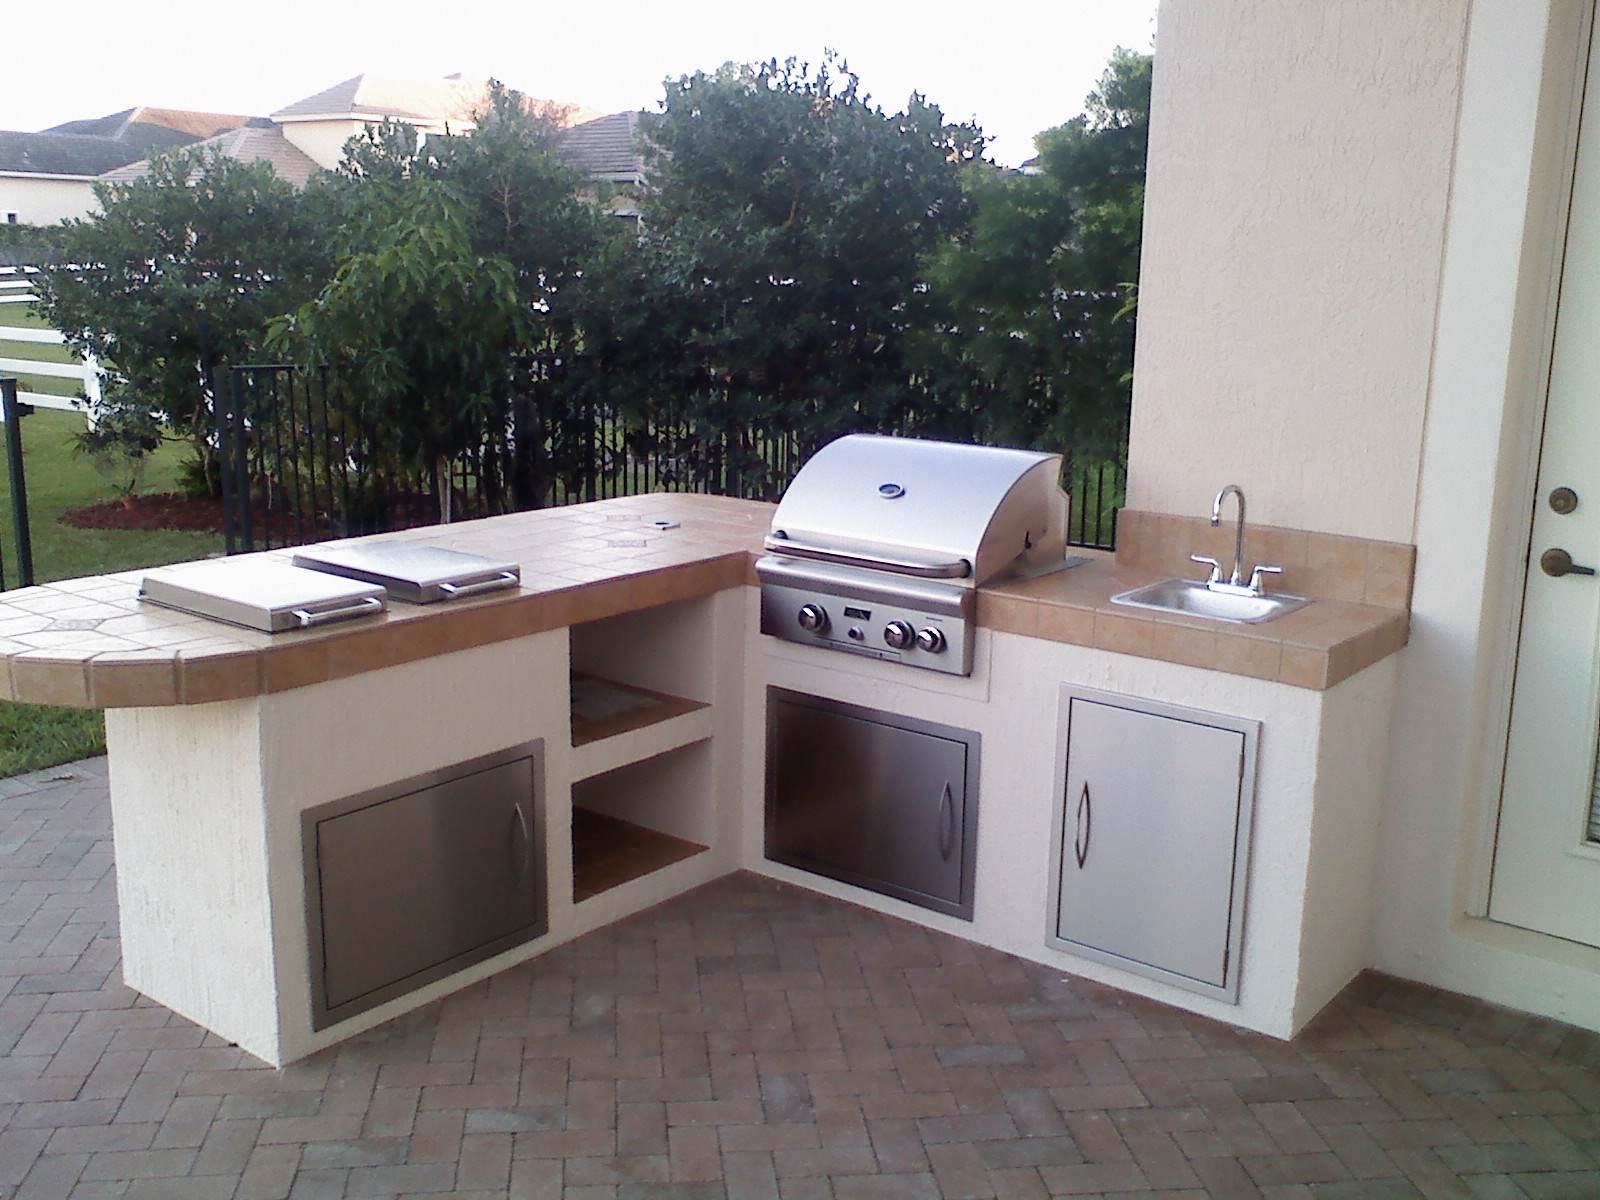 Built in Grills for Outdoor Kitchen